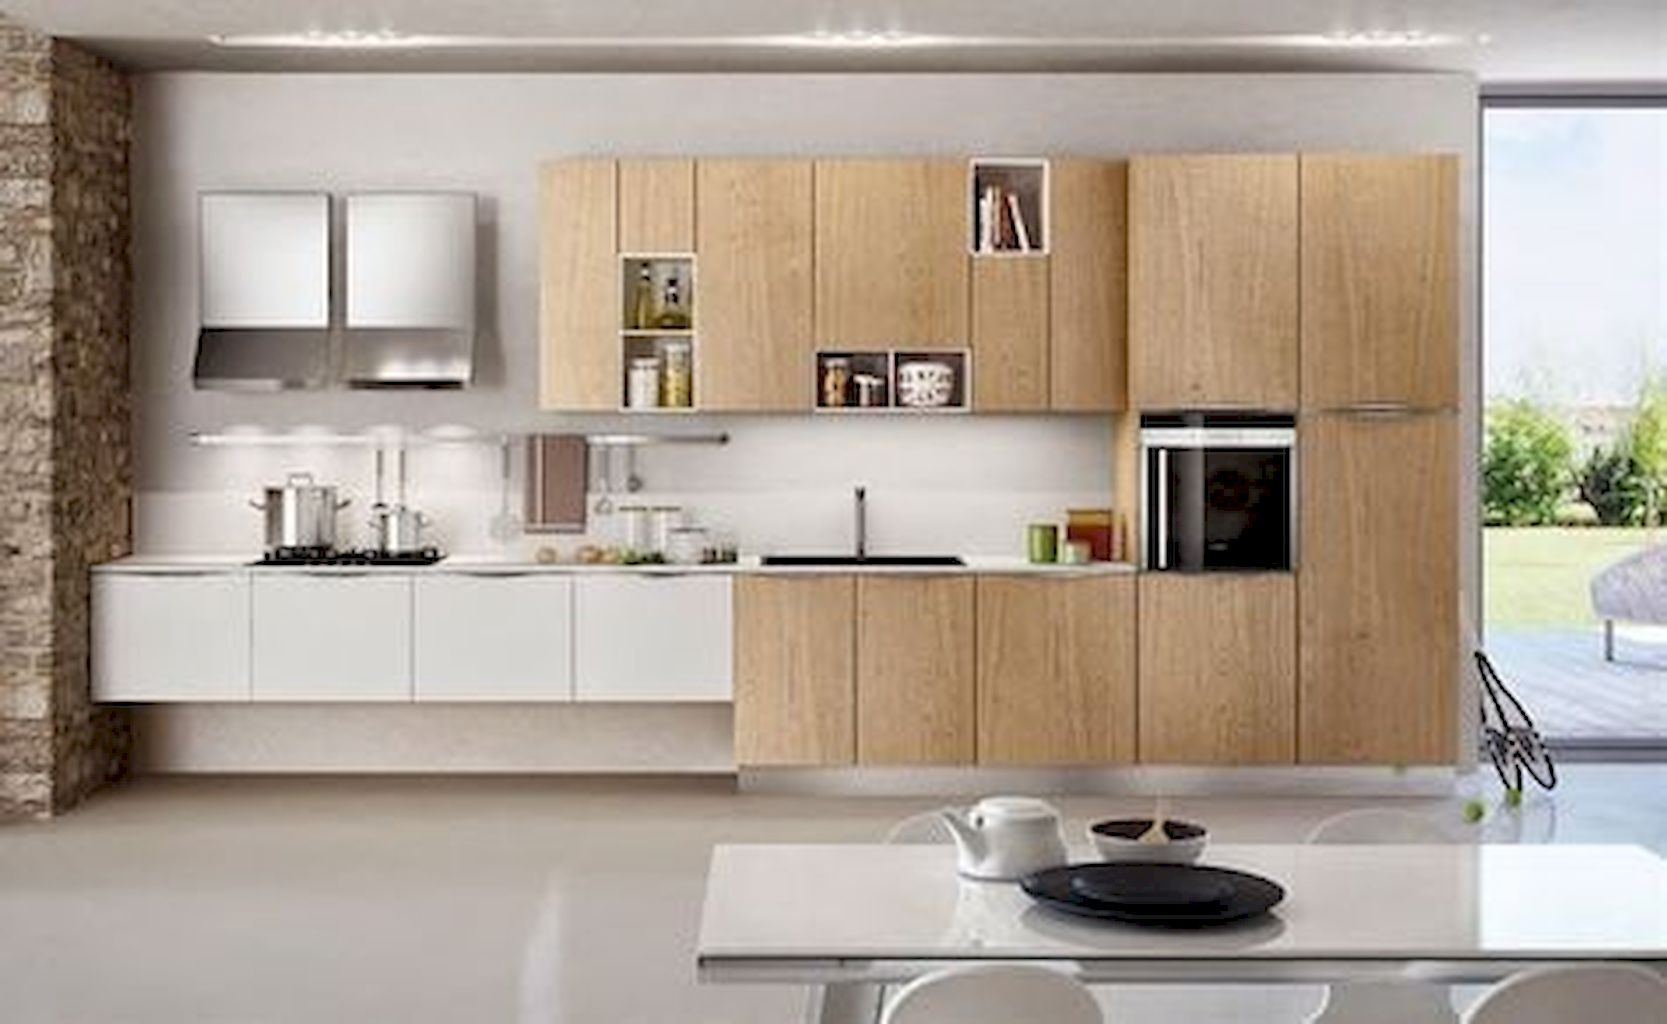 Gorgeous Fabulous Modern Kitchen Sets On Simplicity Efficiency And Elegance Https Homeofpondo Modern Kitchen Set Kitchen Wall Units Italian Kitchen Design